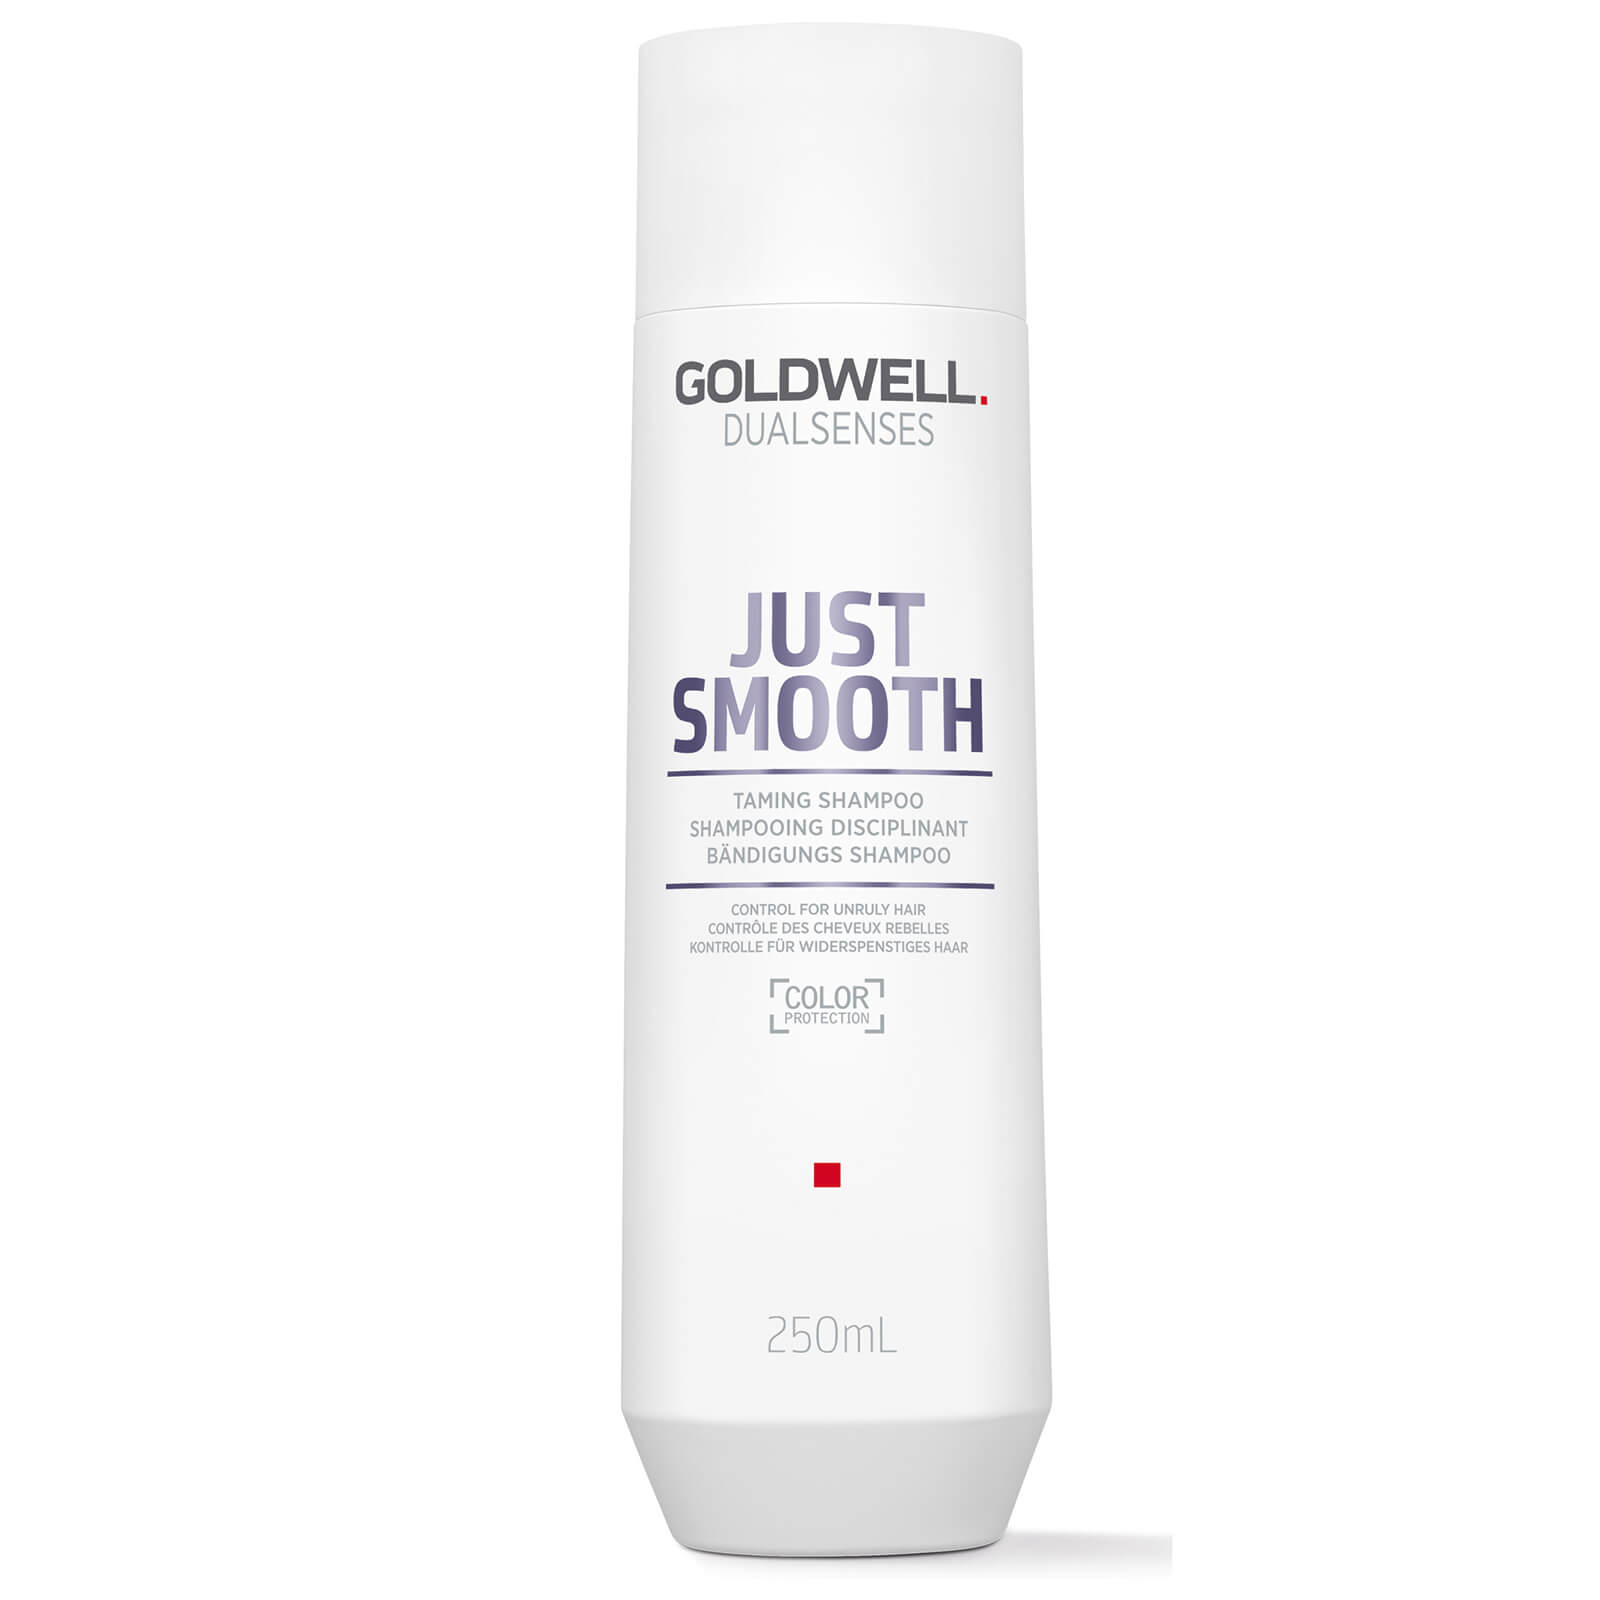 Goldwell Just Smooth Taming Shampoo 250ml